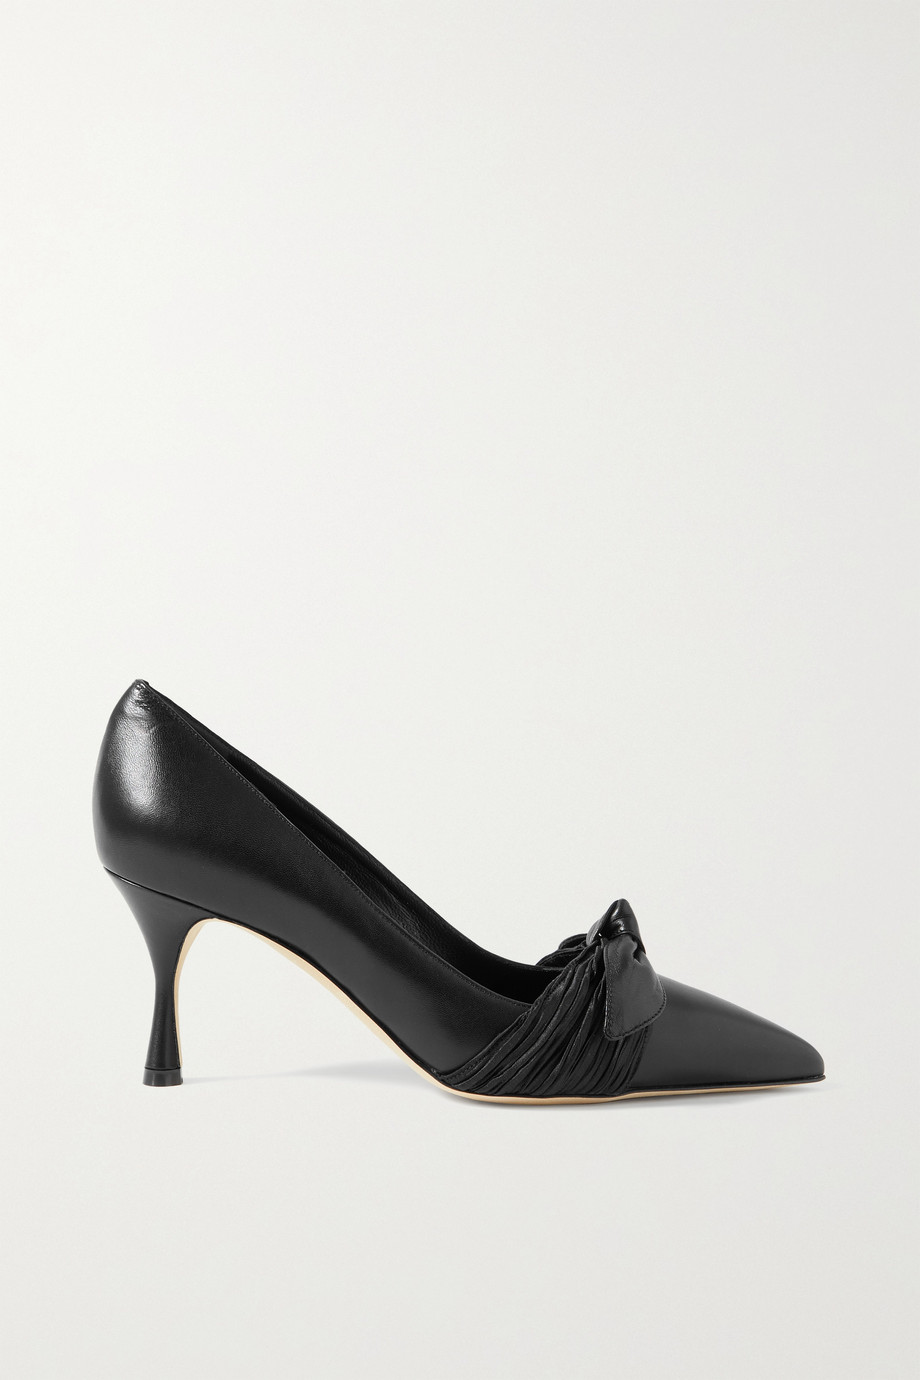 MANOLO BLAHNIK Papaita bow-detailed leather pumps